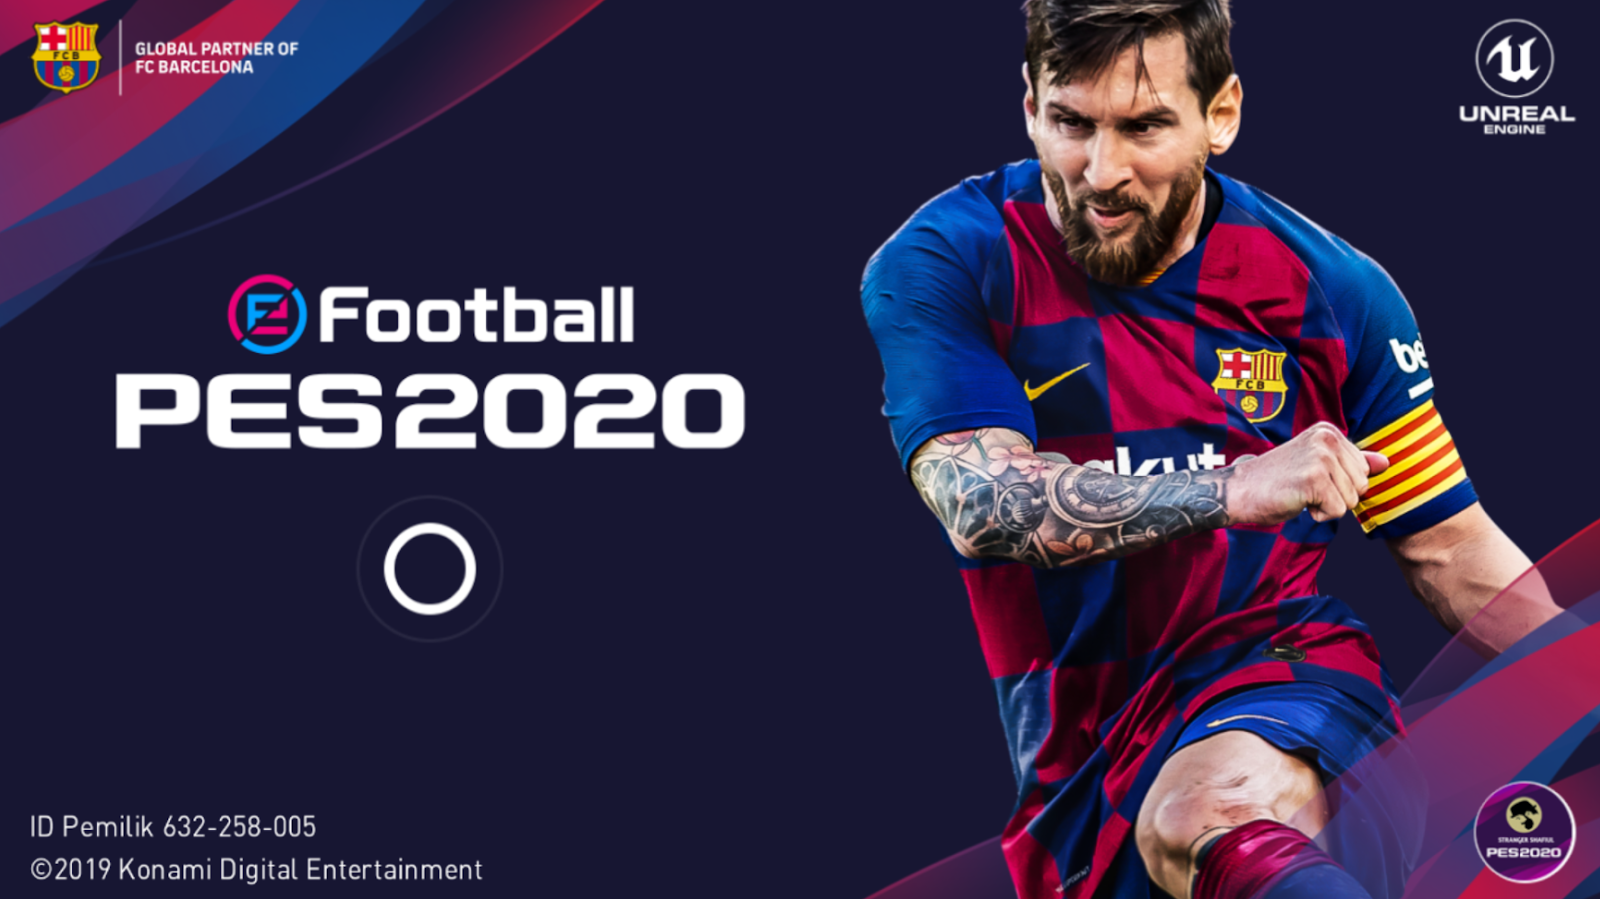 PATCH OF Efootball PES 2020 MOBILE V4.0.2 FULL VERSION BY